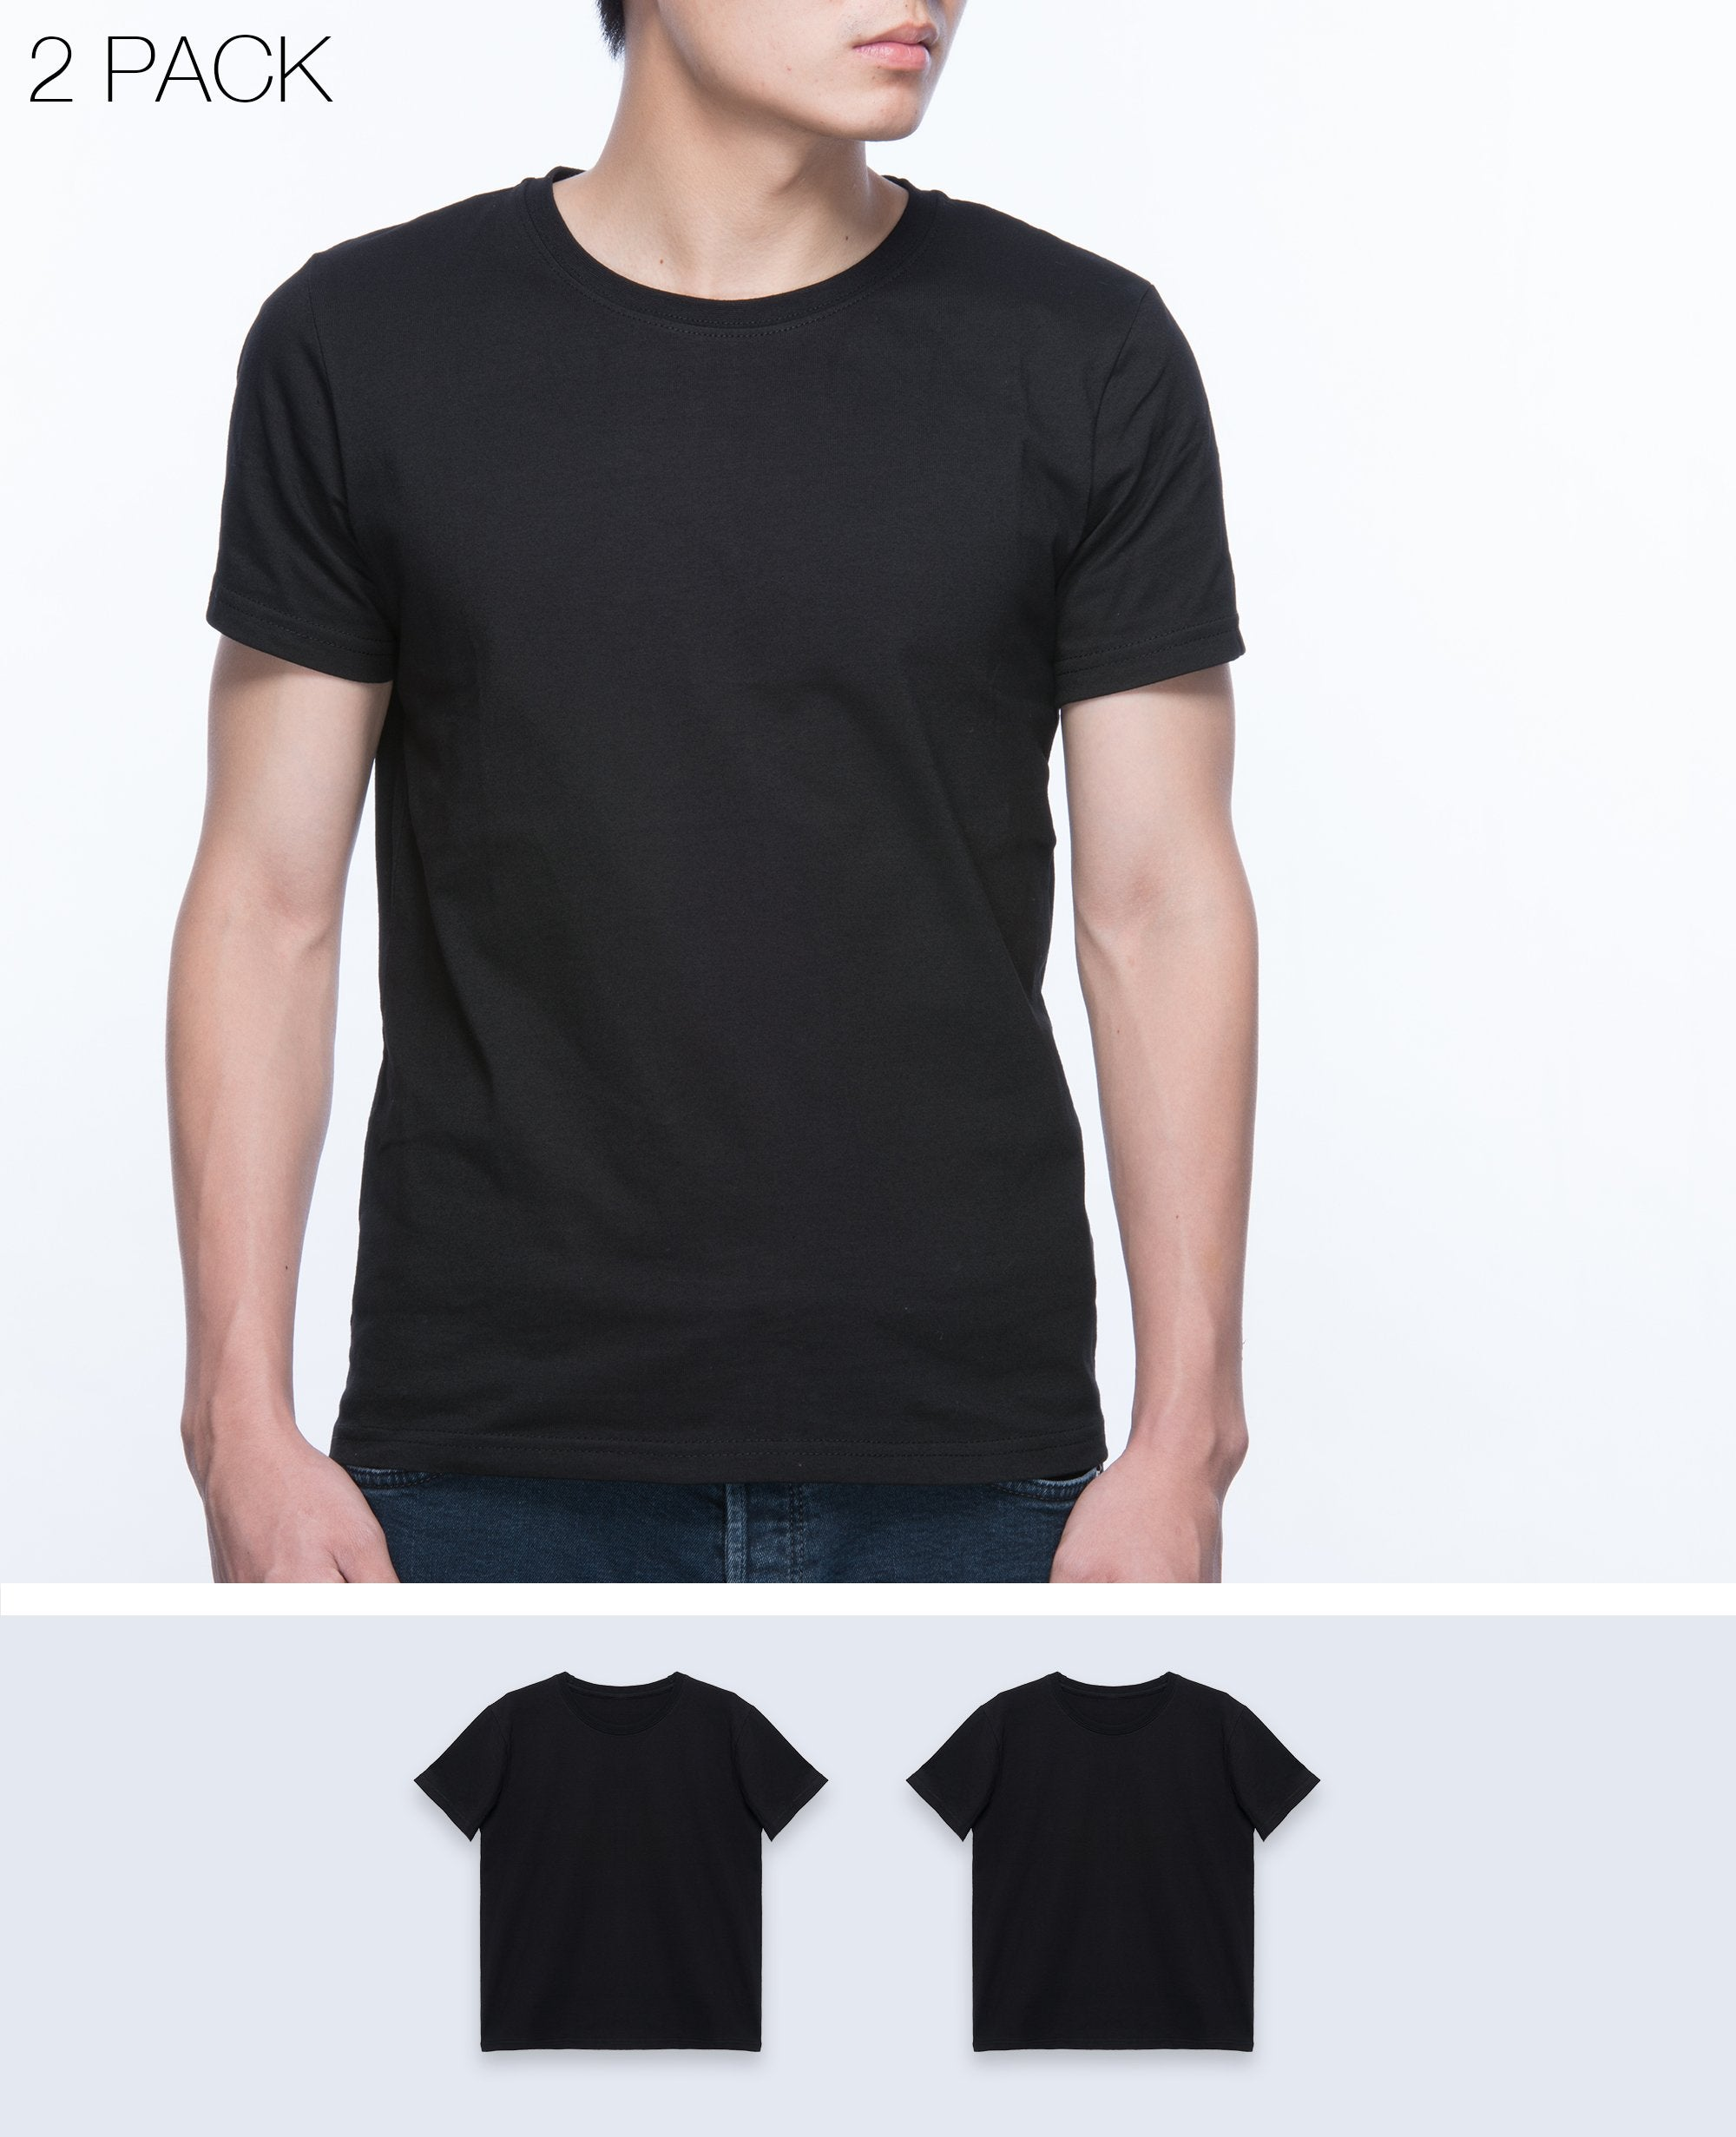 Basic T-shirt Men in Black 2 pack - T-Shirts - BRANMA - BRANMA